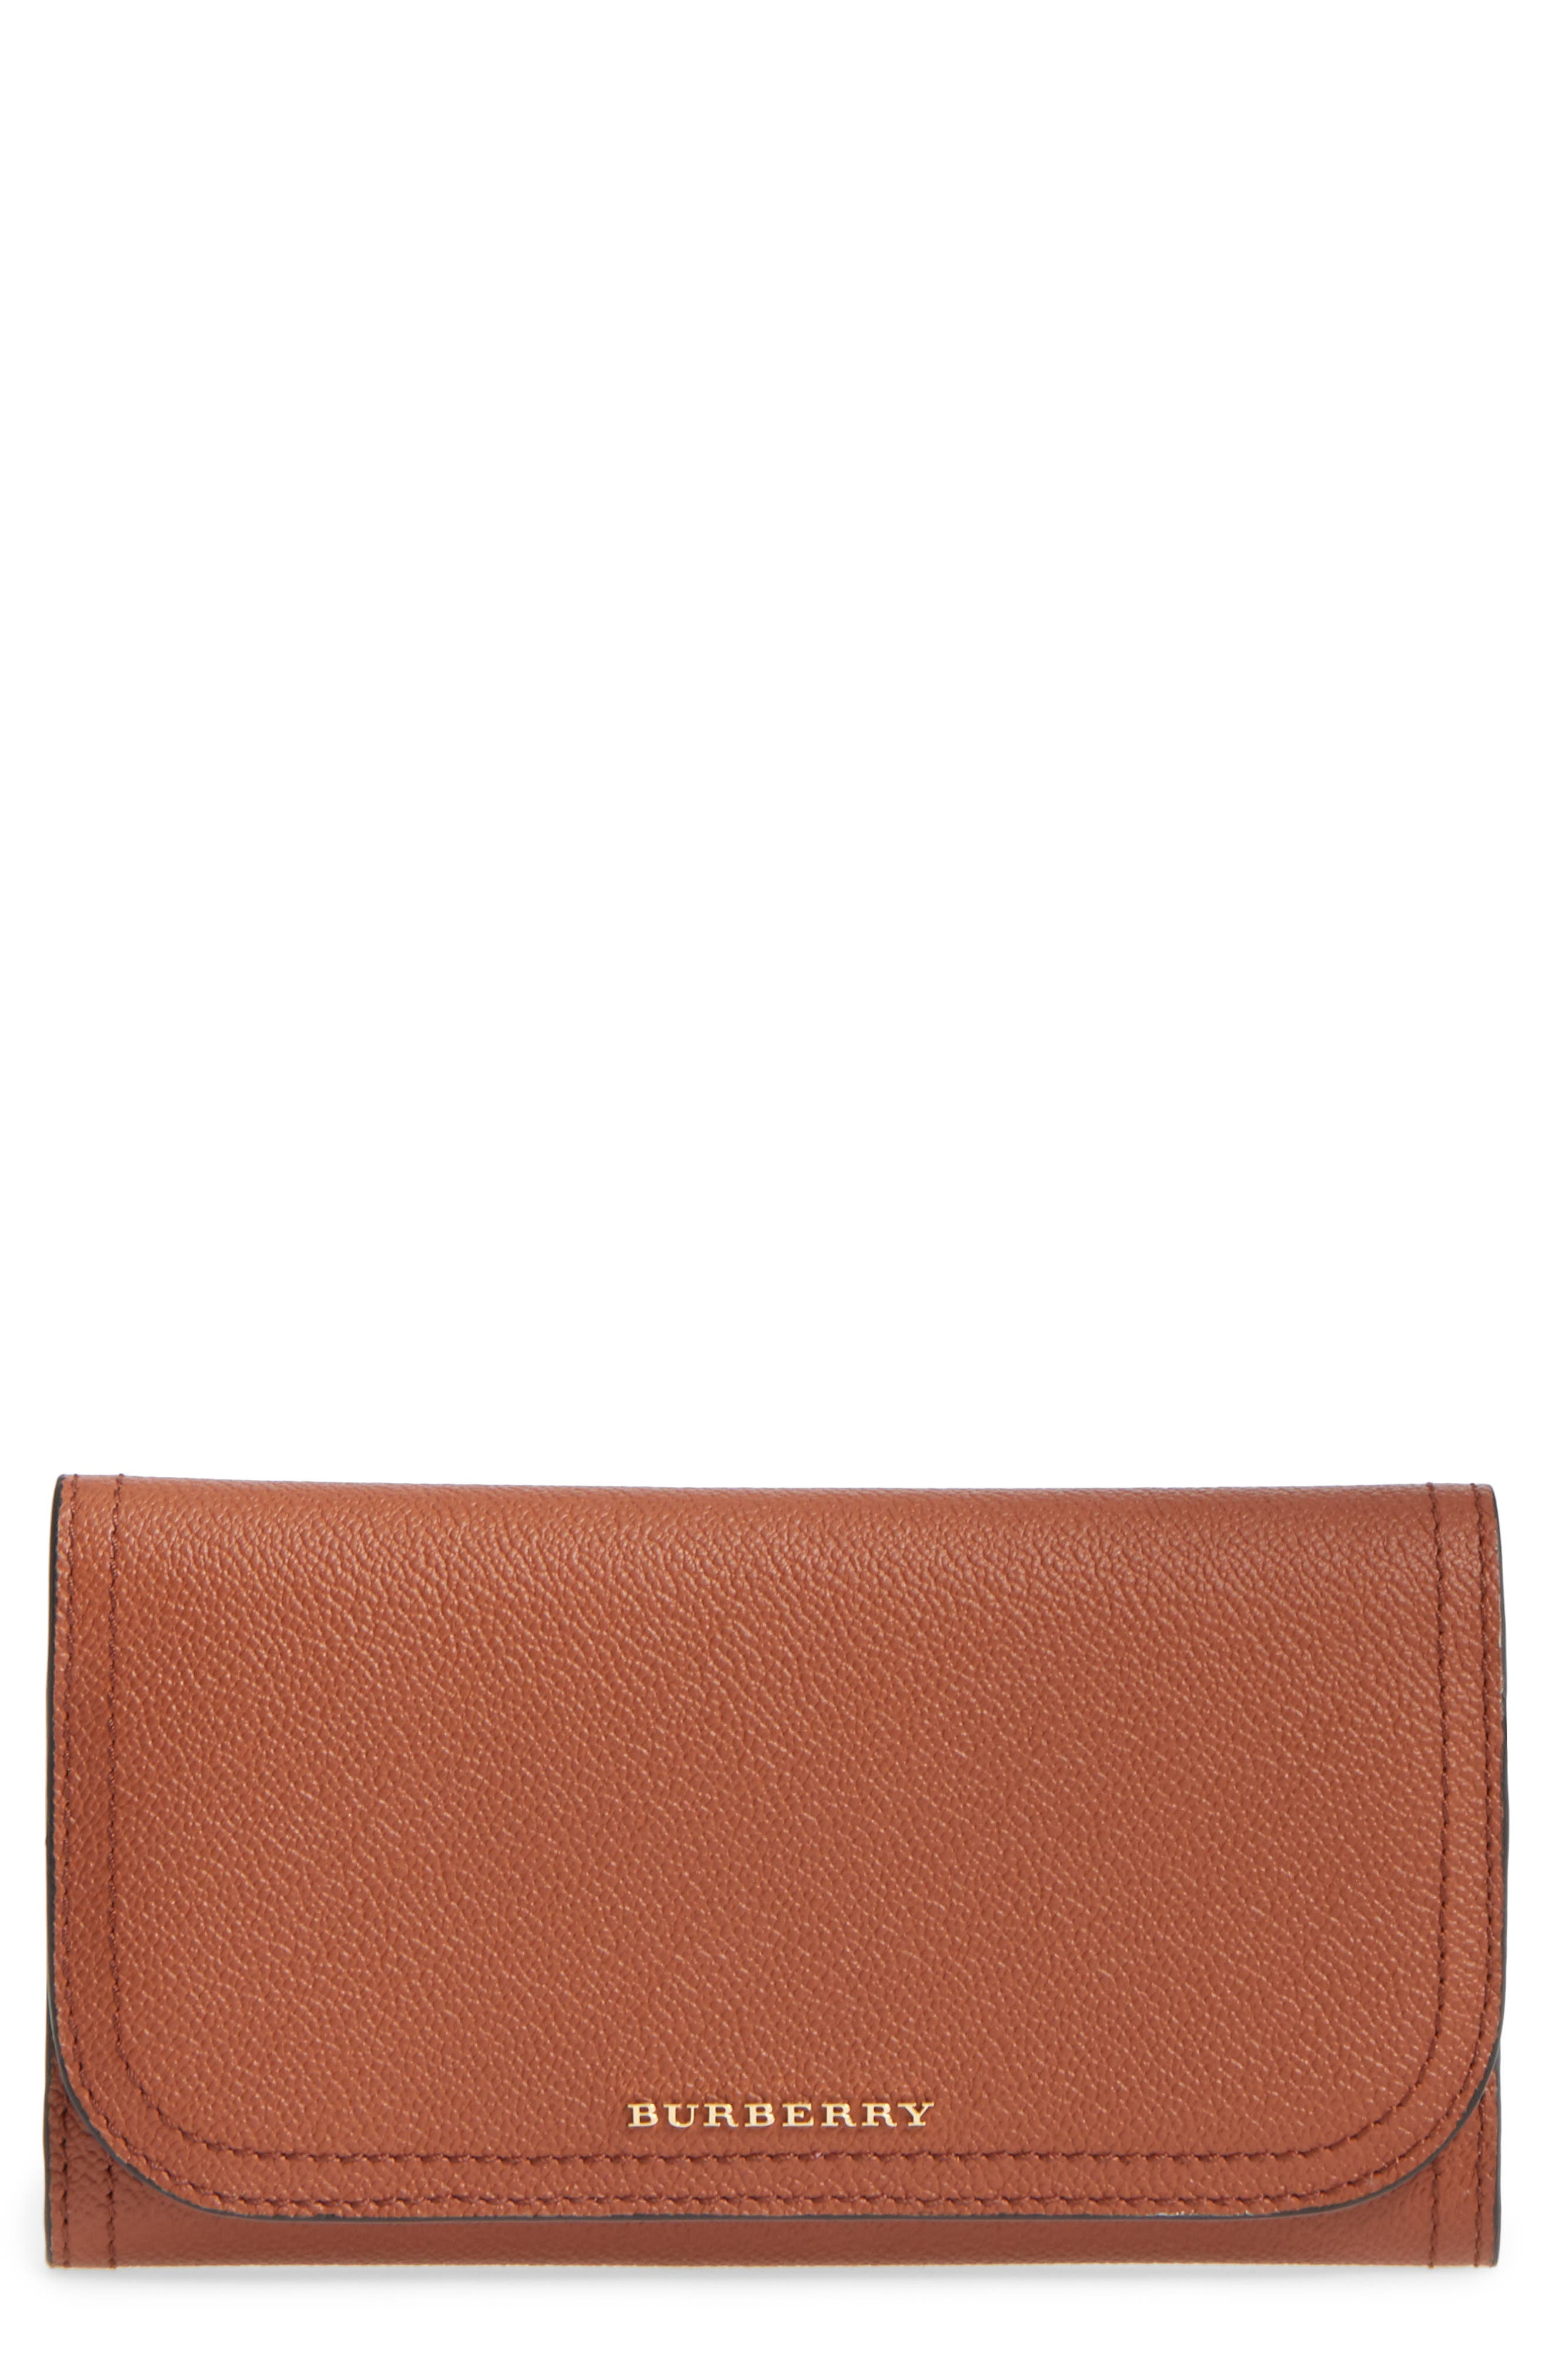 Kenton Leather Flap Wallet with Removable Check Card Case,                         Main,                         color, Bright Toffee/ Multi